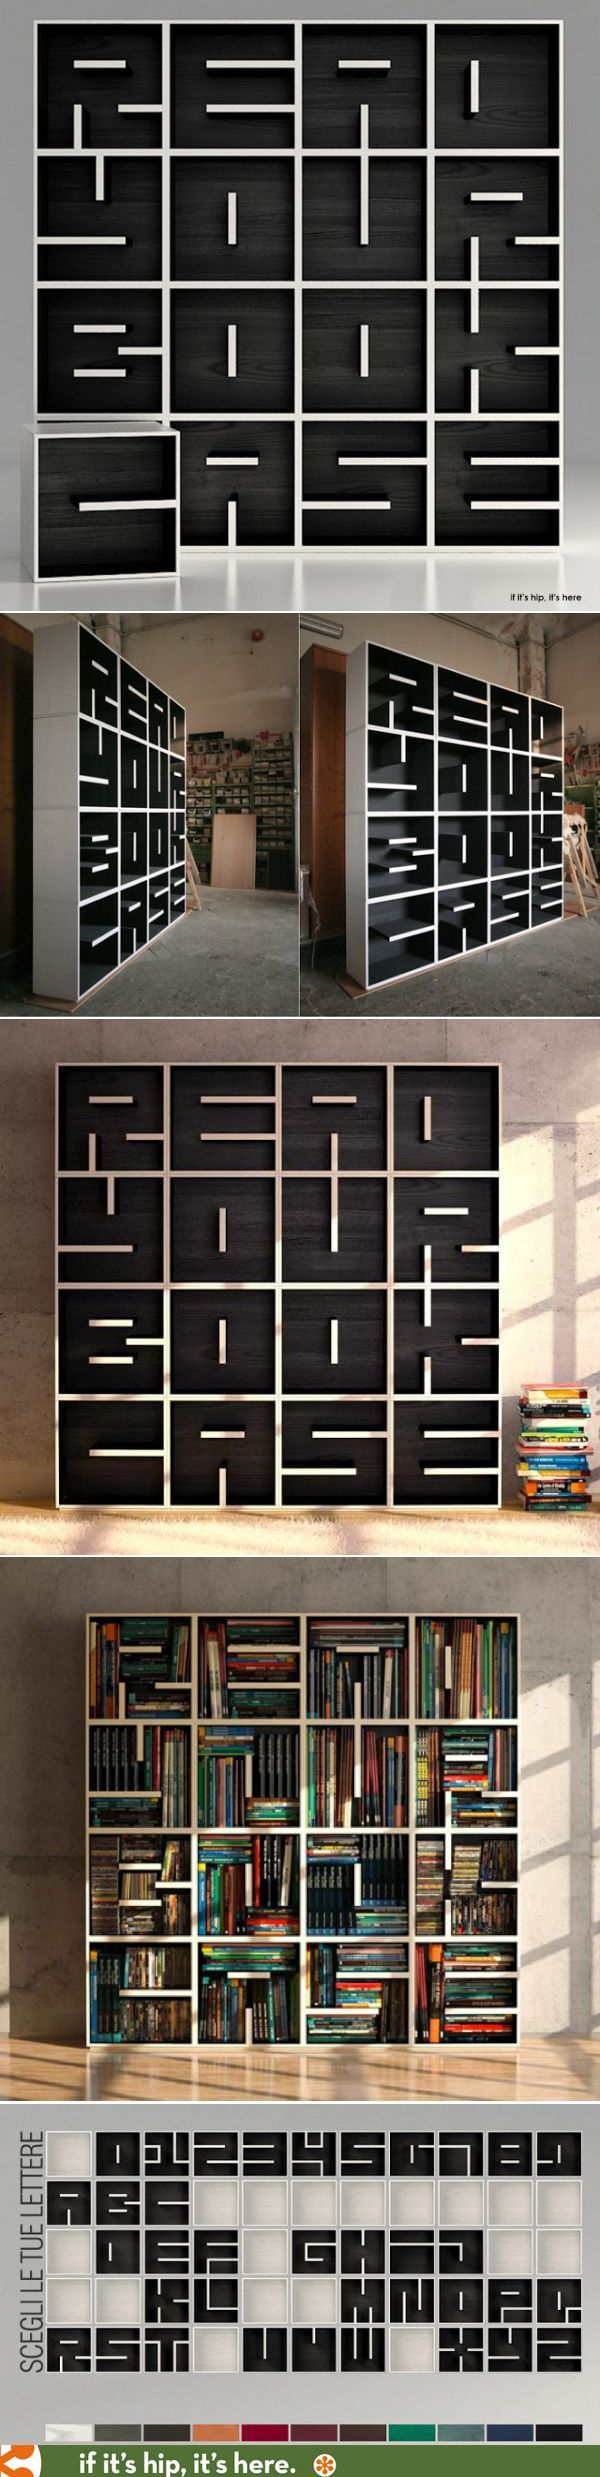 These Letter Shaped Modular Storage Cubes Are Awesome